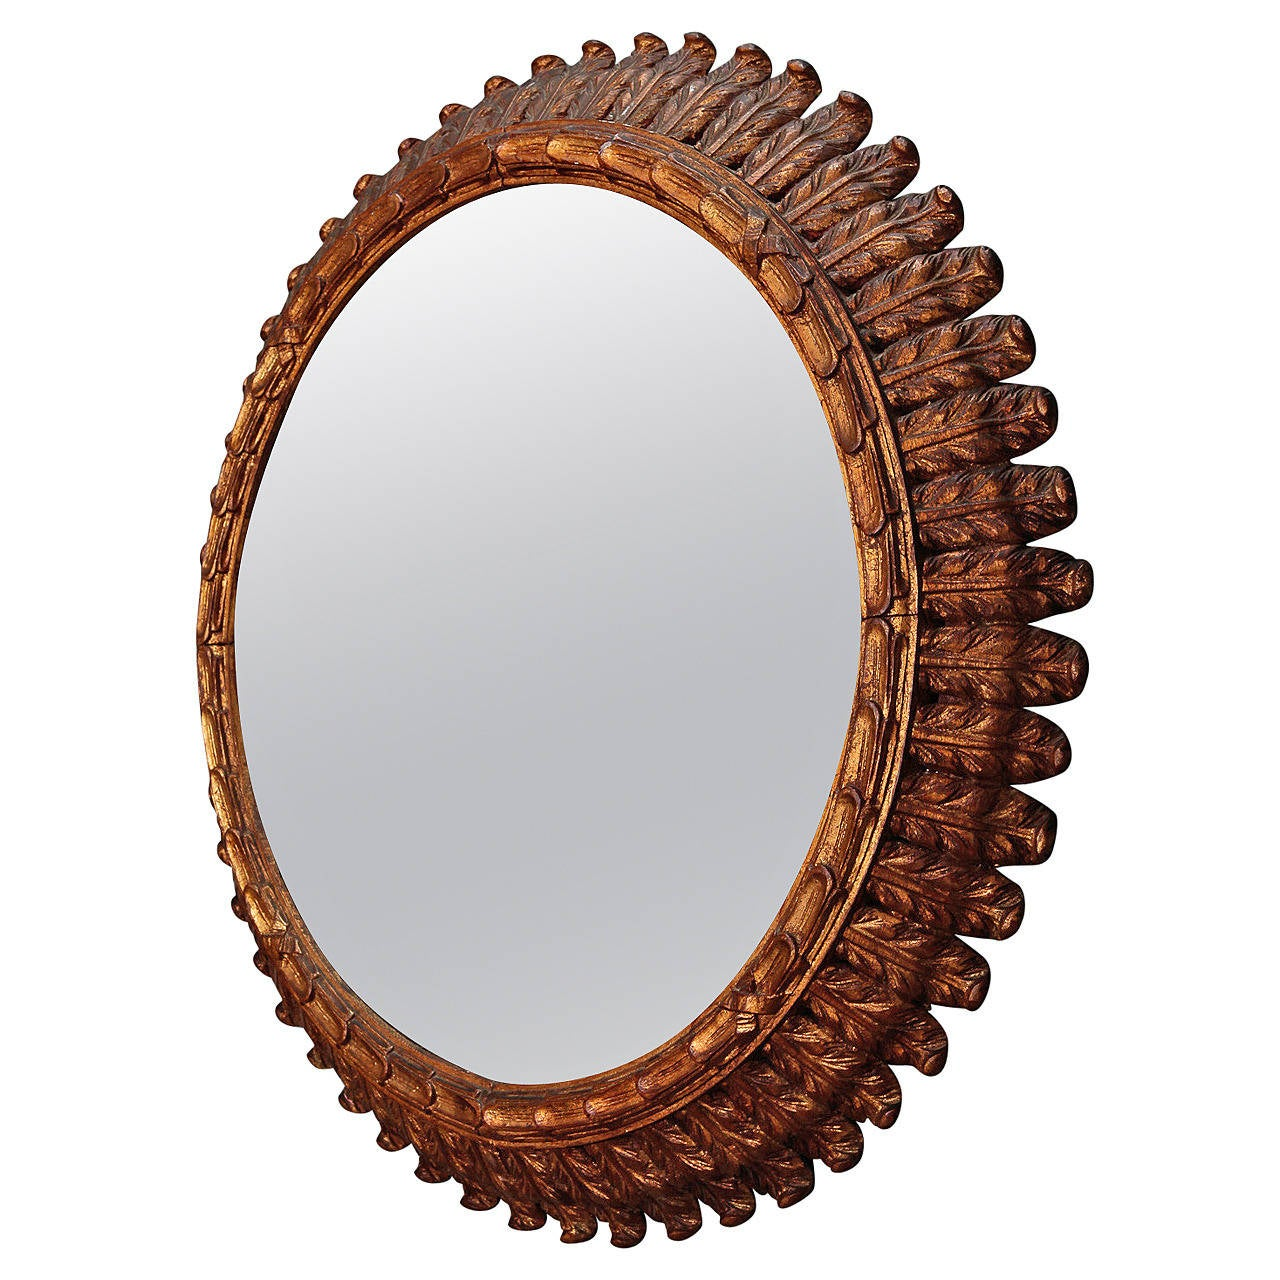 Wonderful Large Round Wood Mirror Part - 14: 19th Century French Large Carved Gilt Wood Round Mirror 1